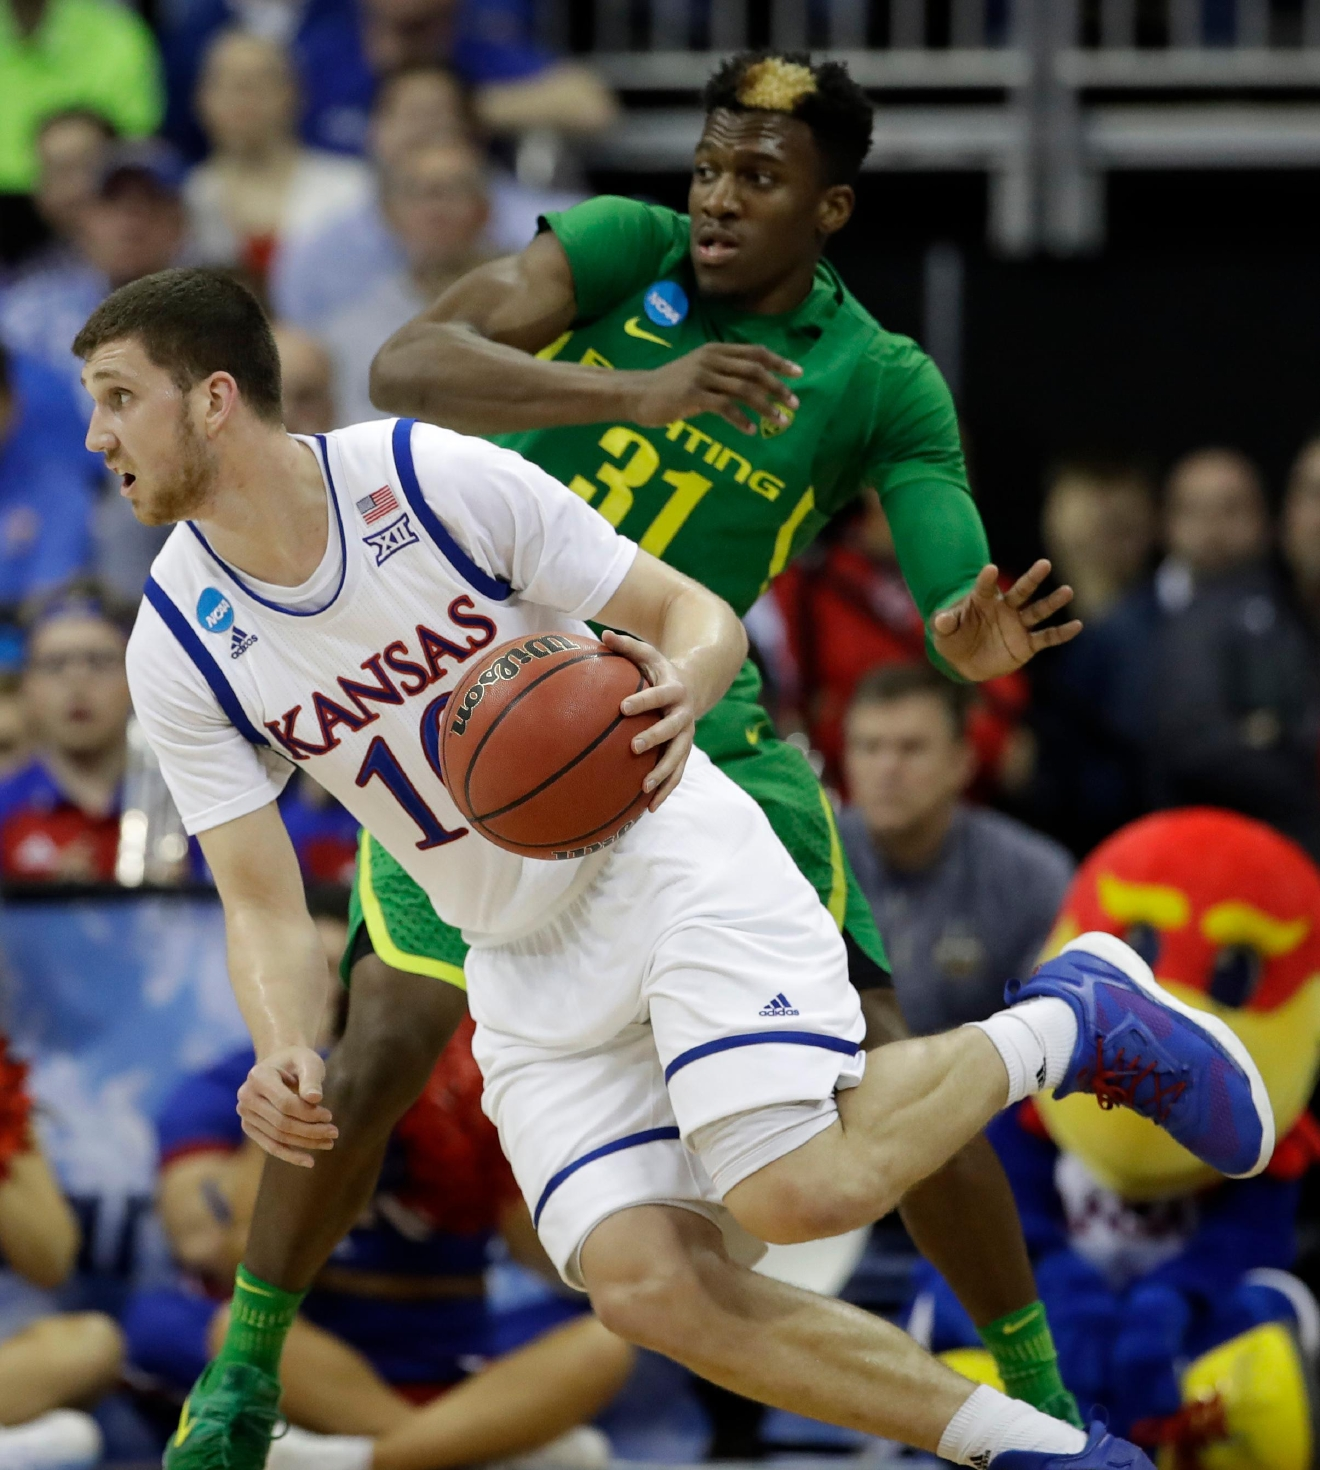 Kansas guard Sviatoslav Mykhailiuk drives around Oregon guard Dylan Ennis (31) during the second half of the Midwest Regional final of the NCAA men's college basketball tournament, Saturday, March 25, 2017, in Kansas City, Mo. (AP Photo/Charlie Riedel)